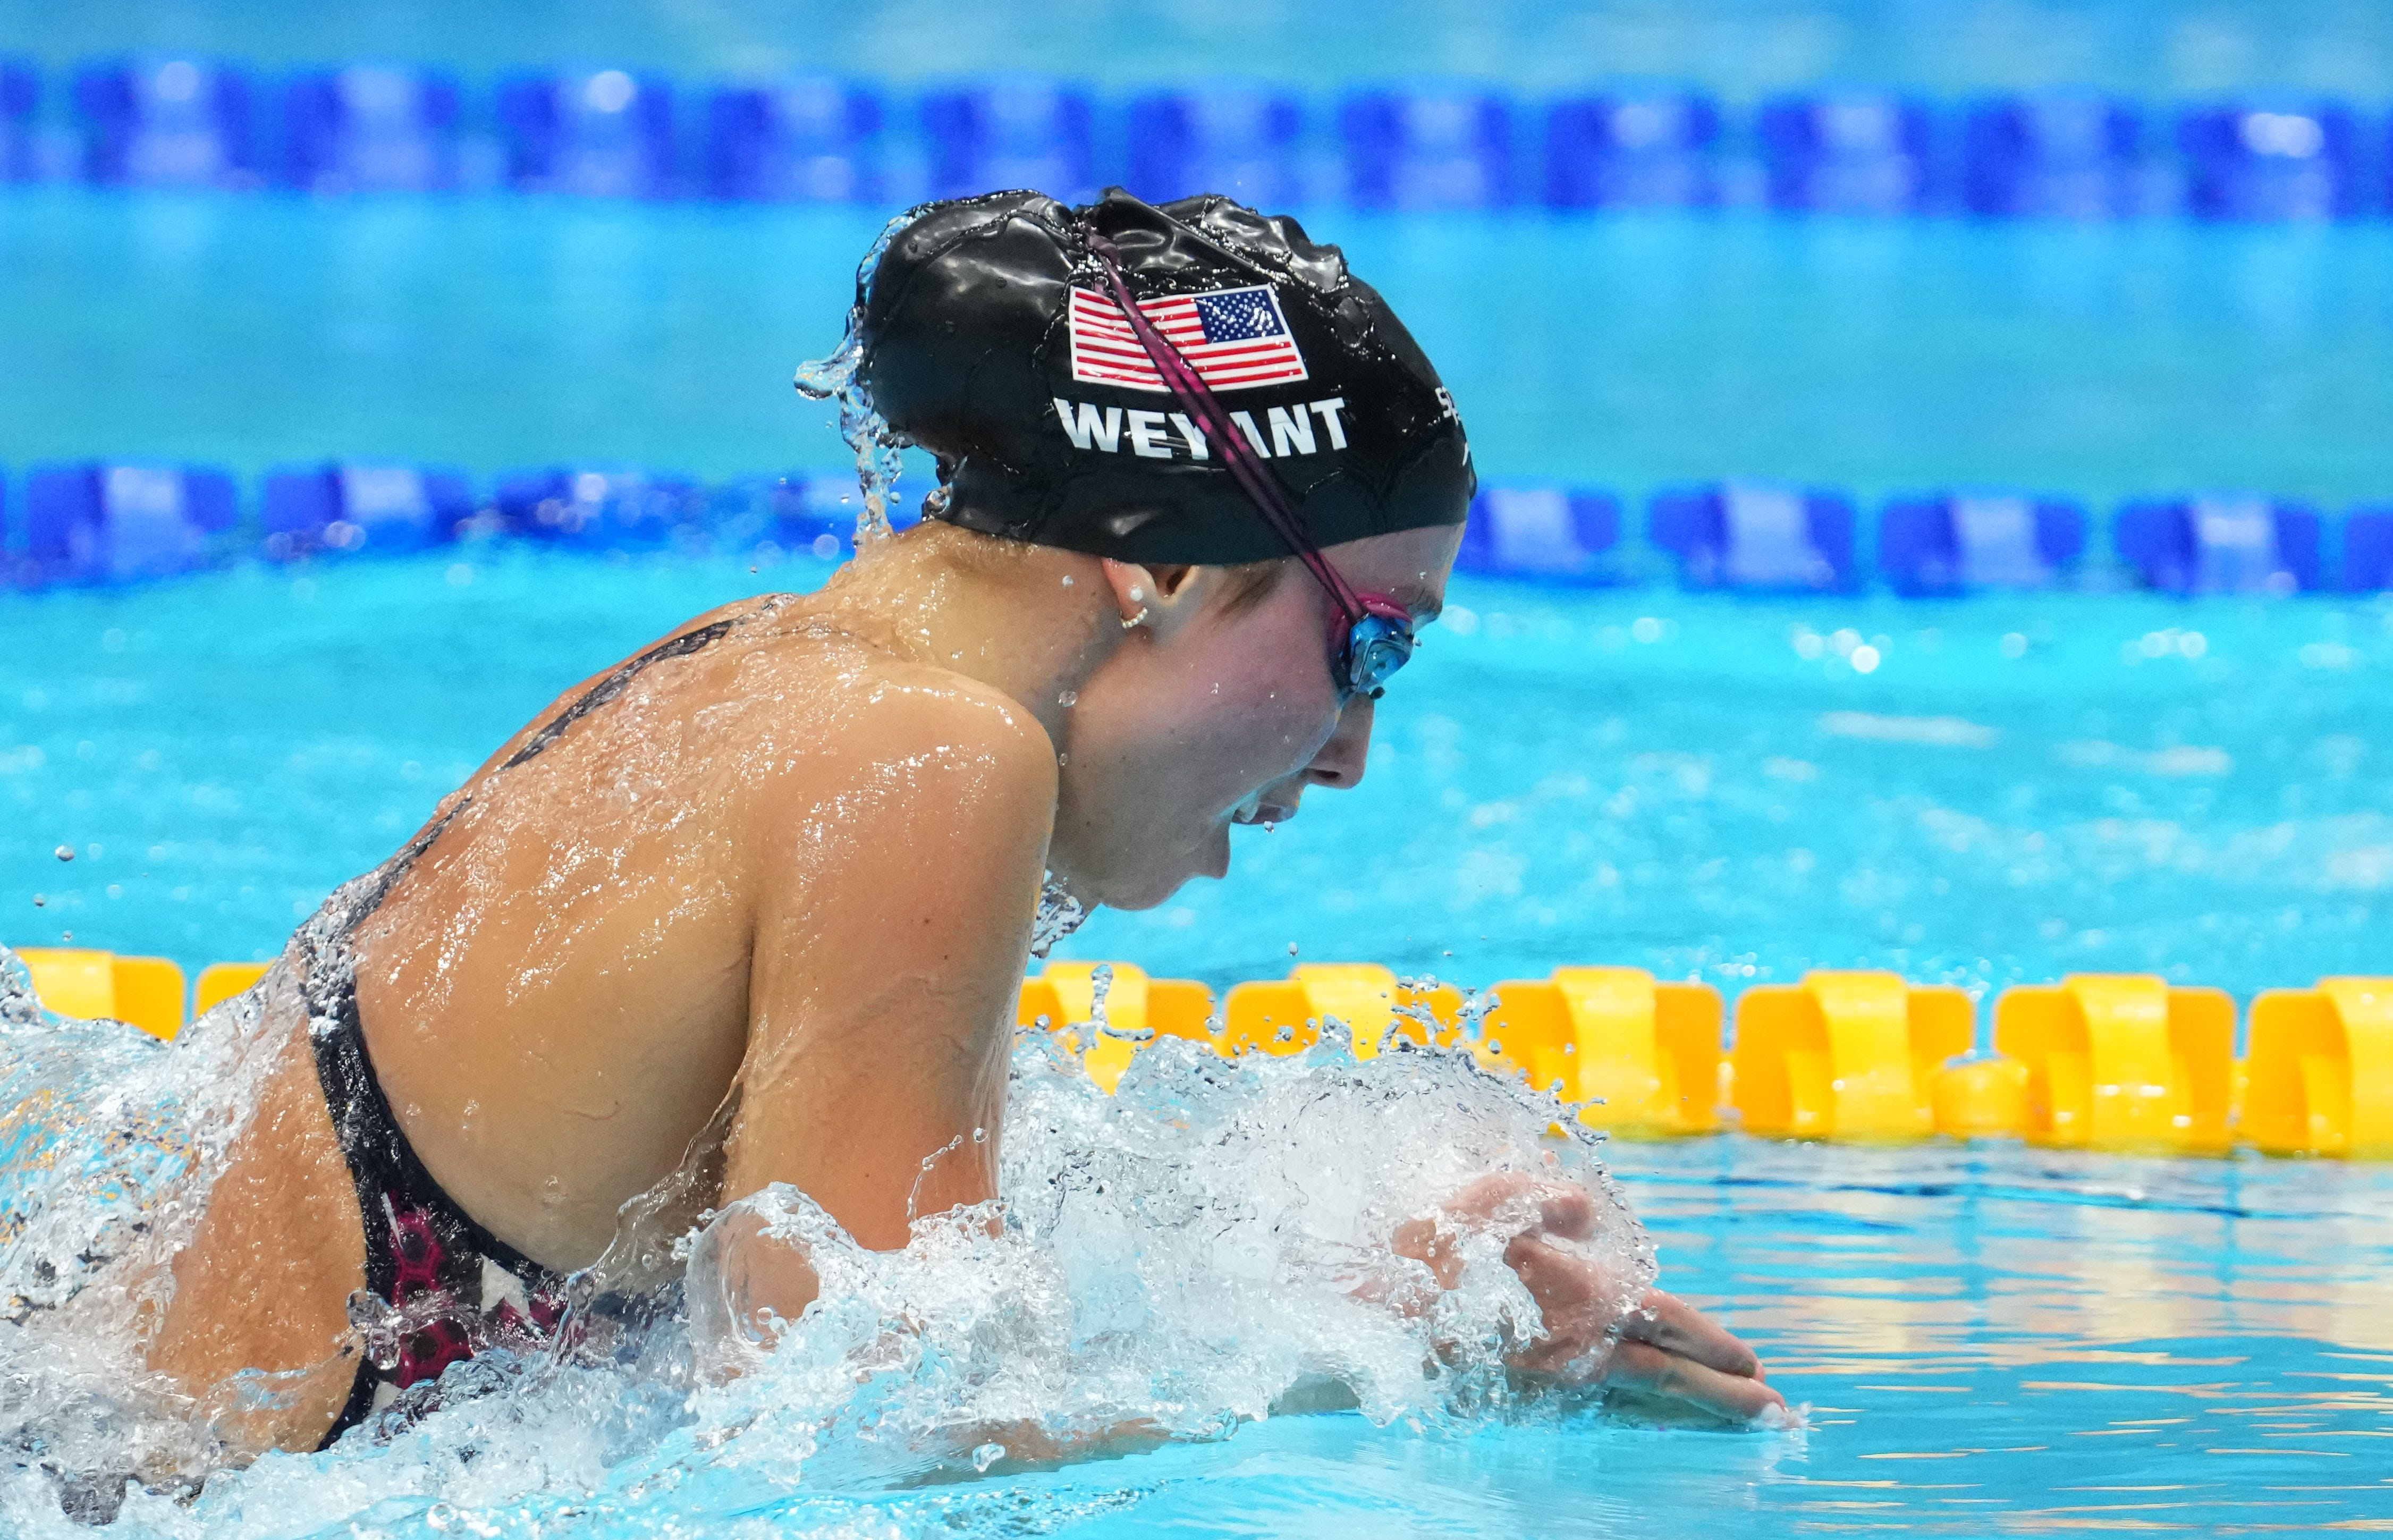 Emma Weyant Wins Silver Medal In 400 Im At Tokyo Olympics 2021